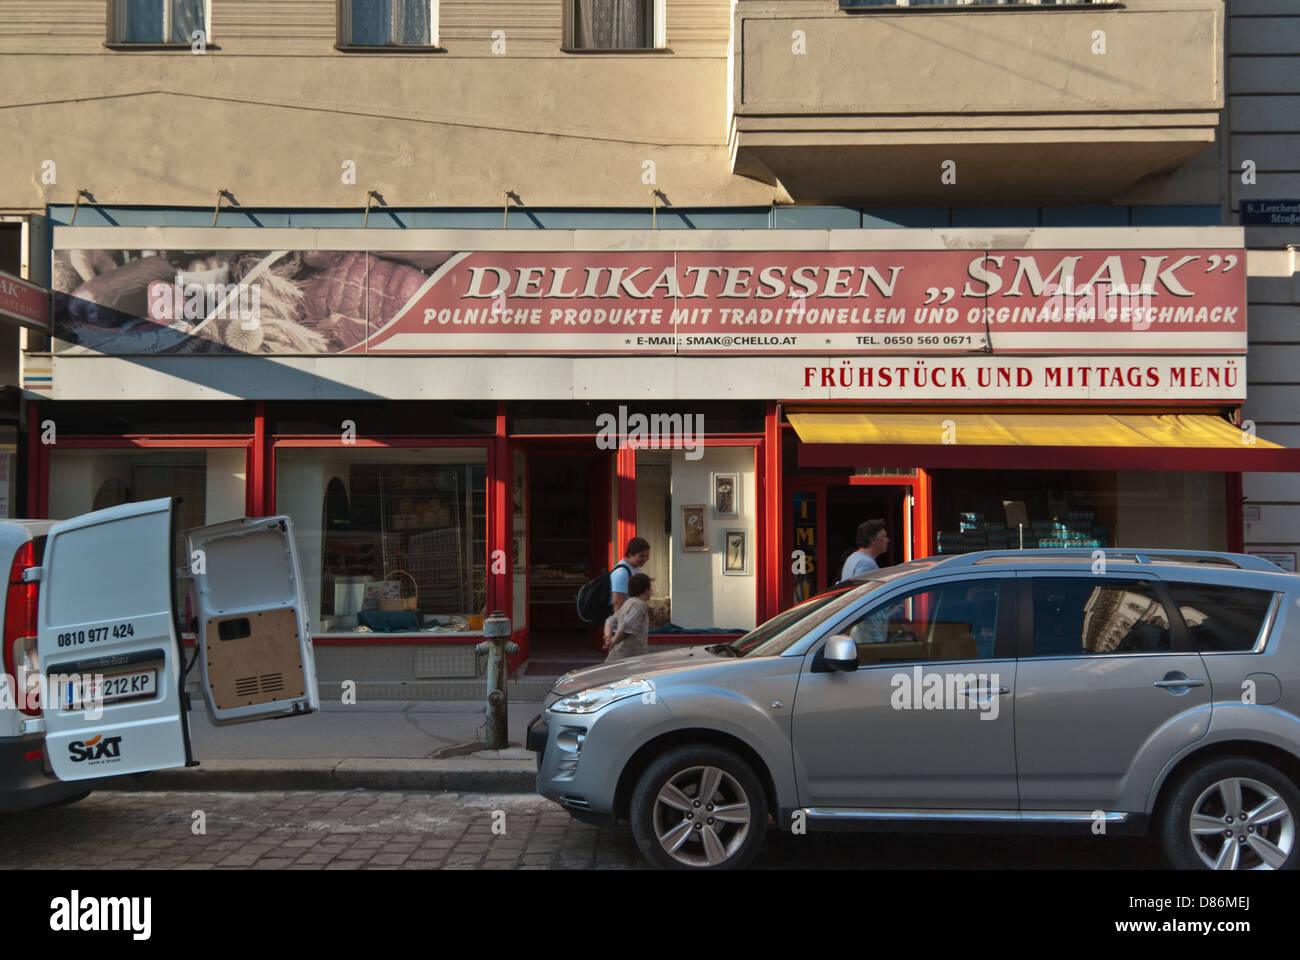 Delikatessen Smak - Polish shop in a centre of Vienna, Austria - Stock Image